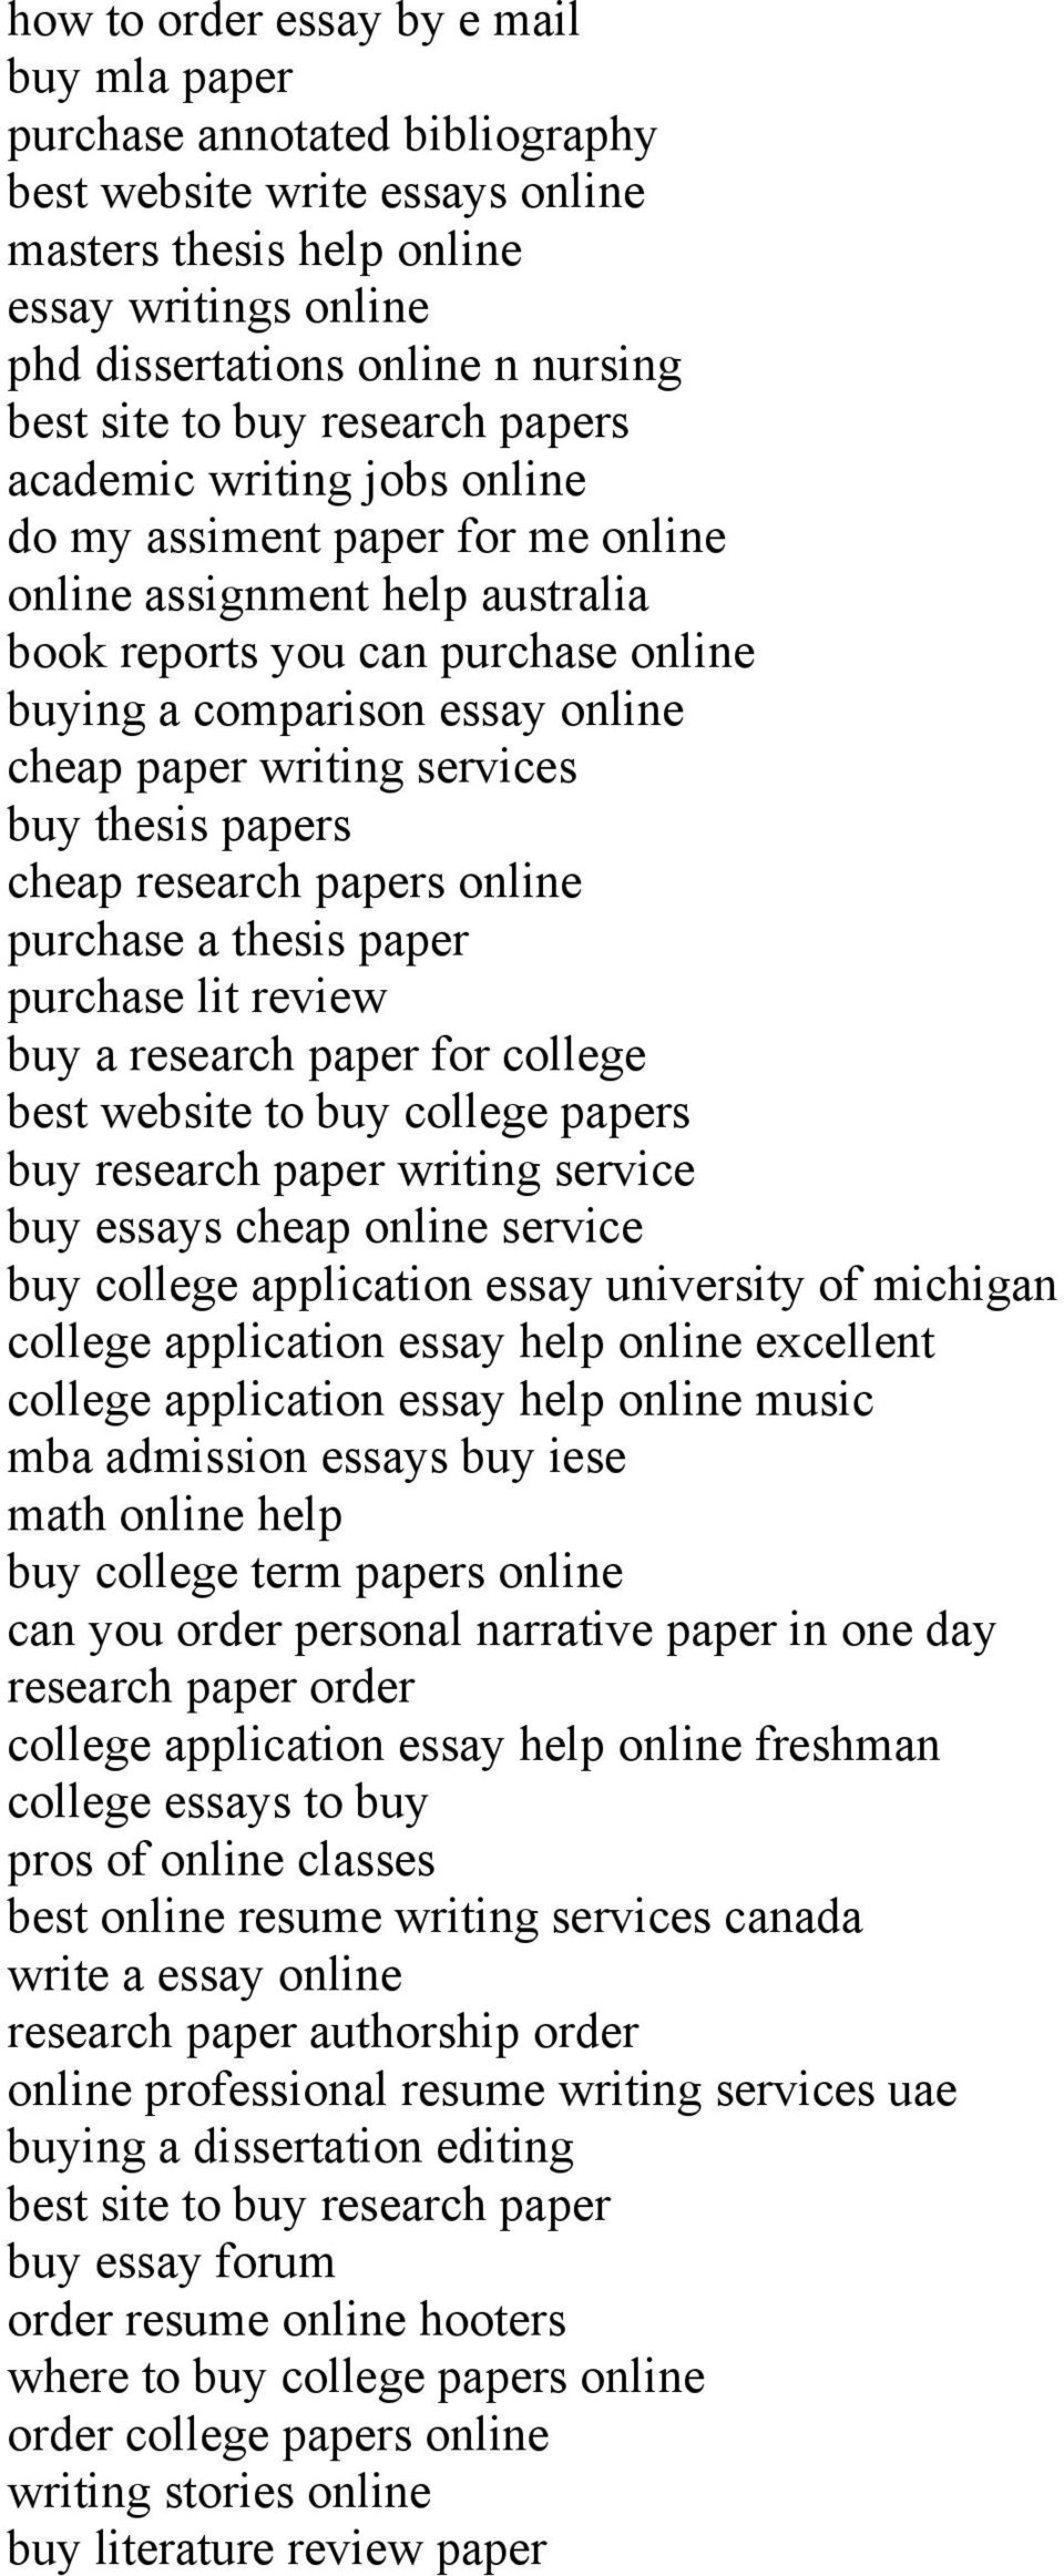 014 Research Paper Buying For College Page 5 Top A Buy Cheap 1920